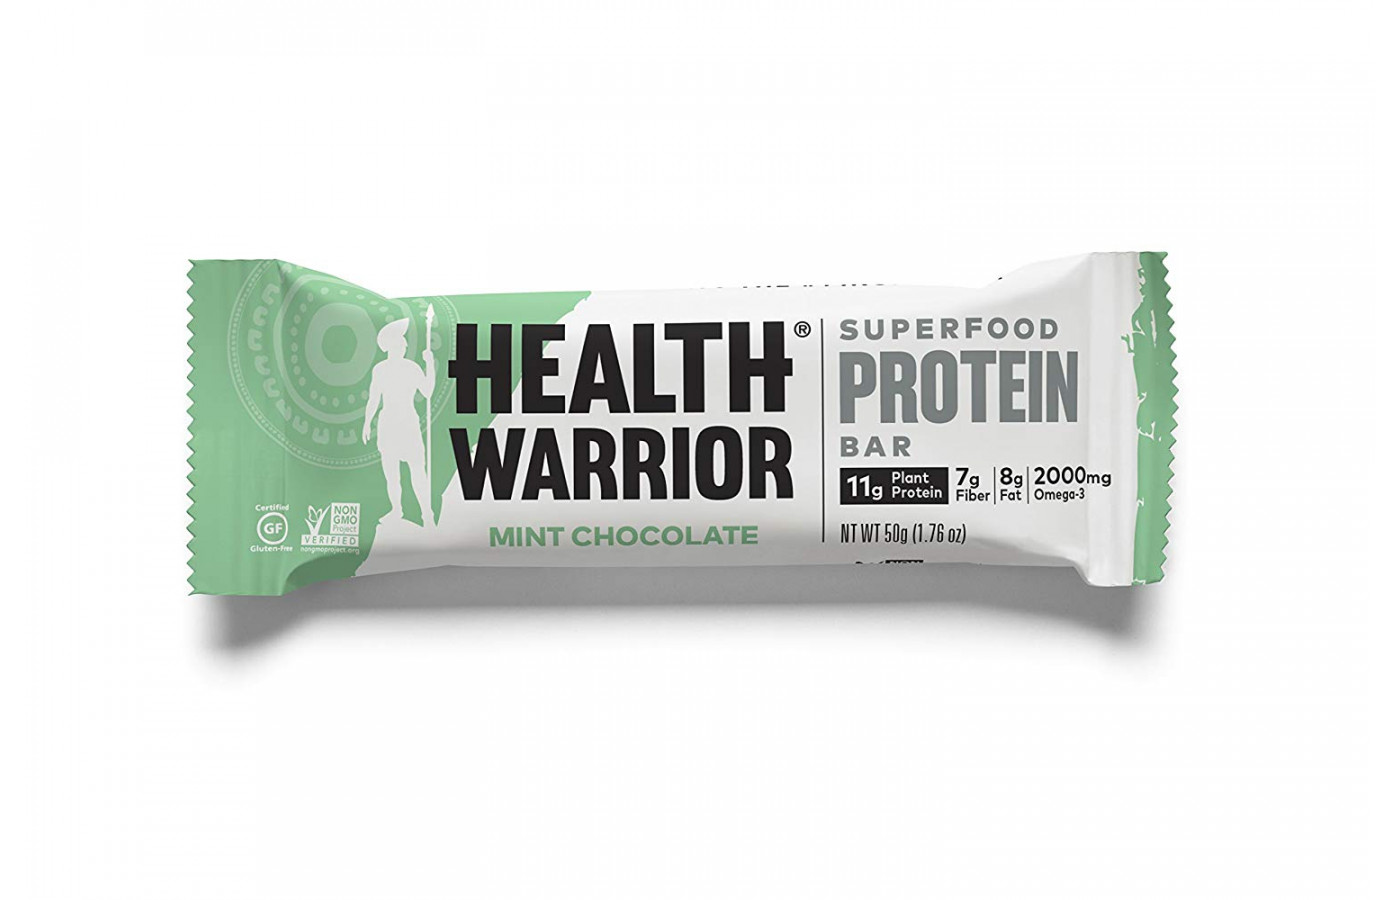 Health warrior mint